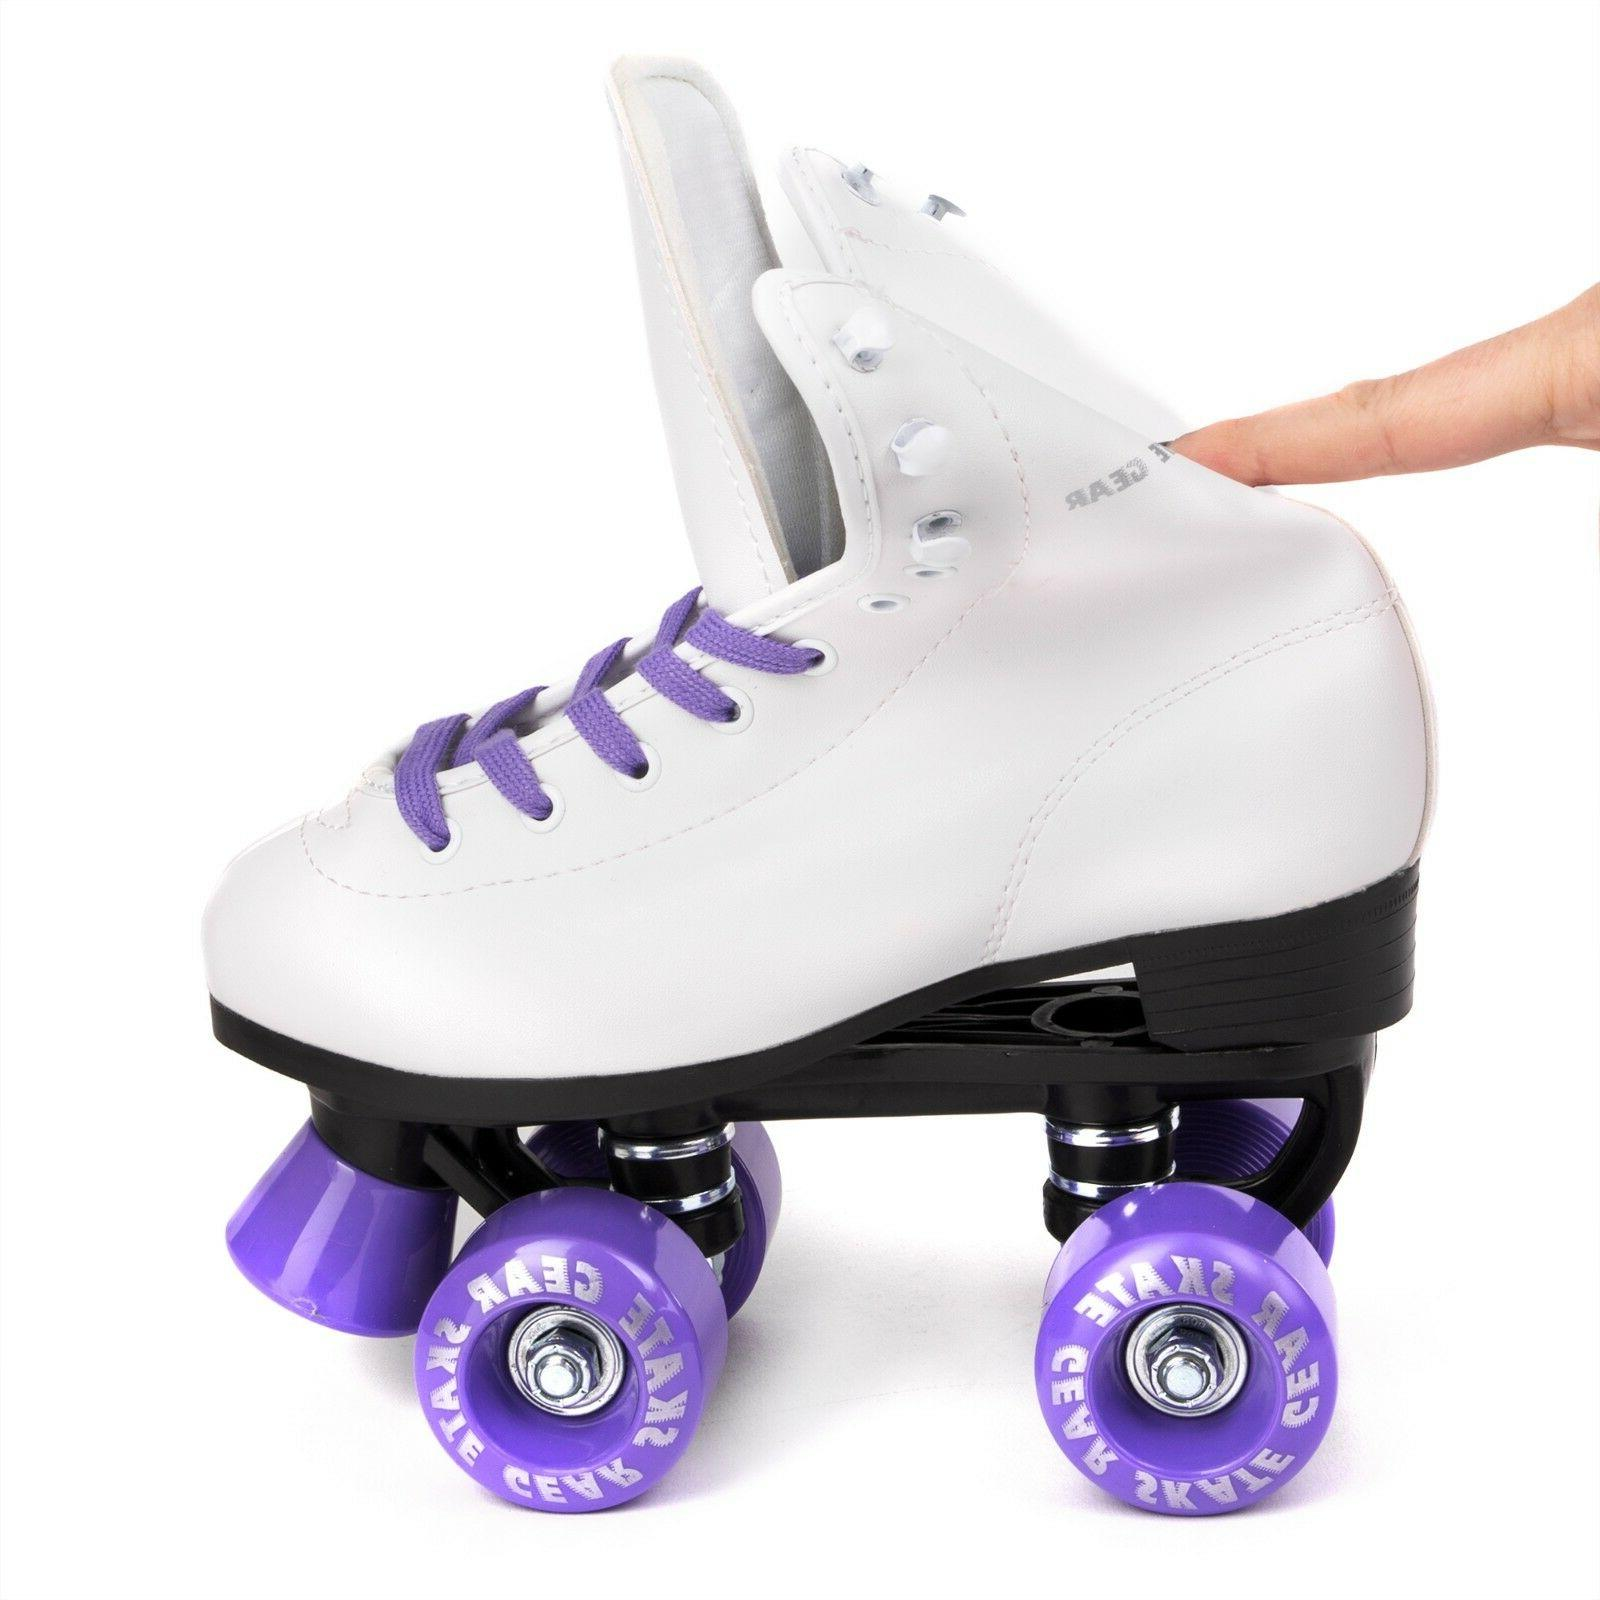 Skate Roller Skates, Christmas and Holiday for Girls